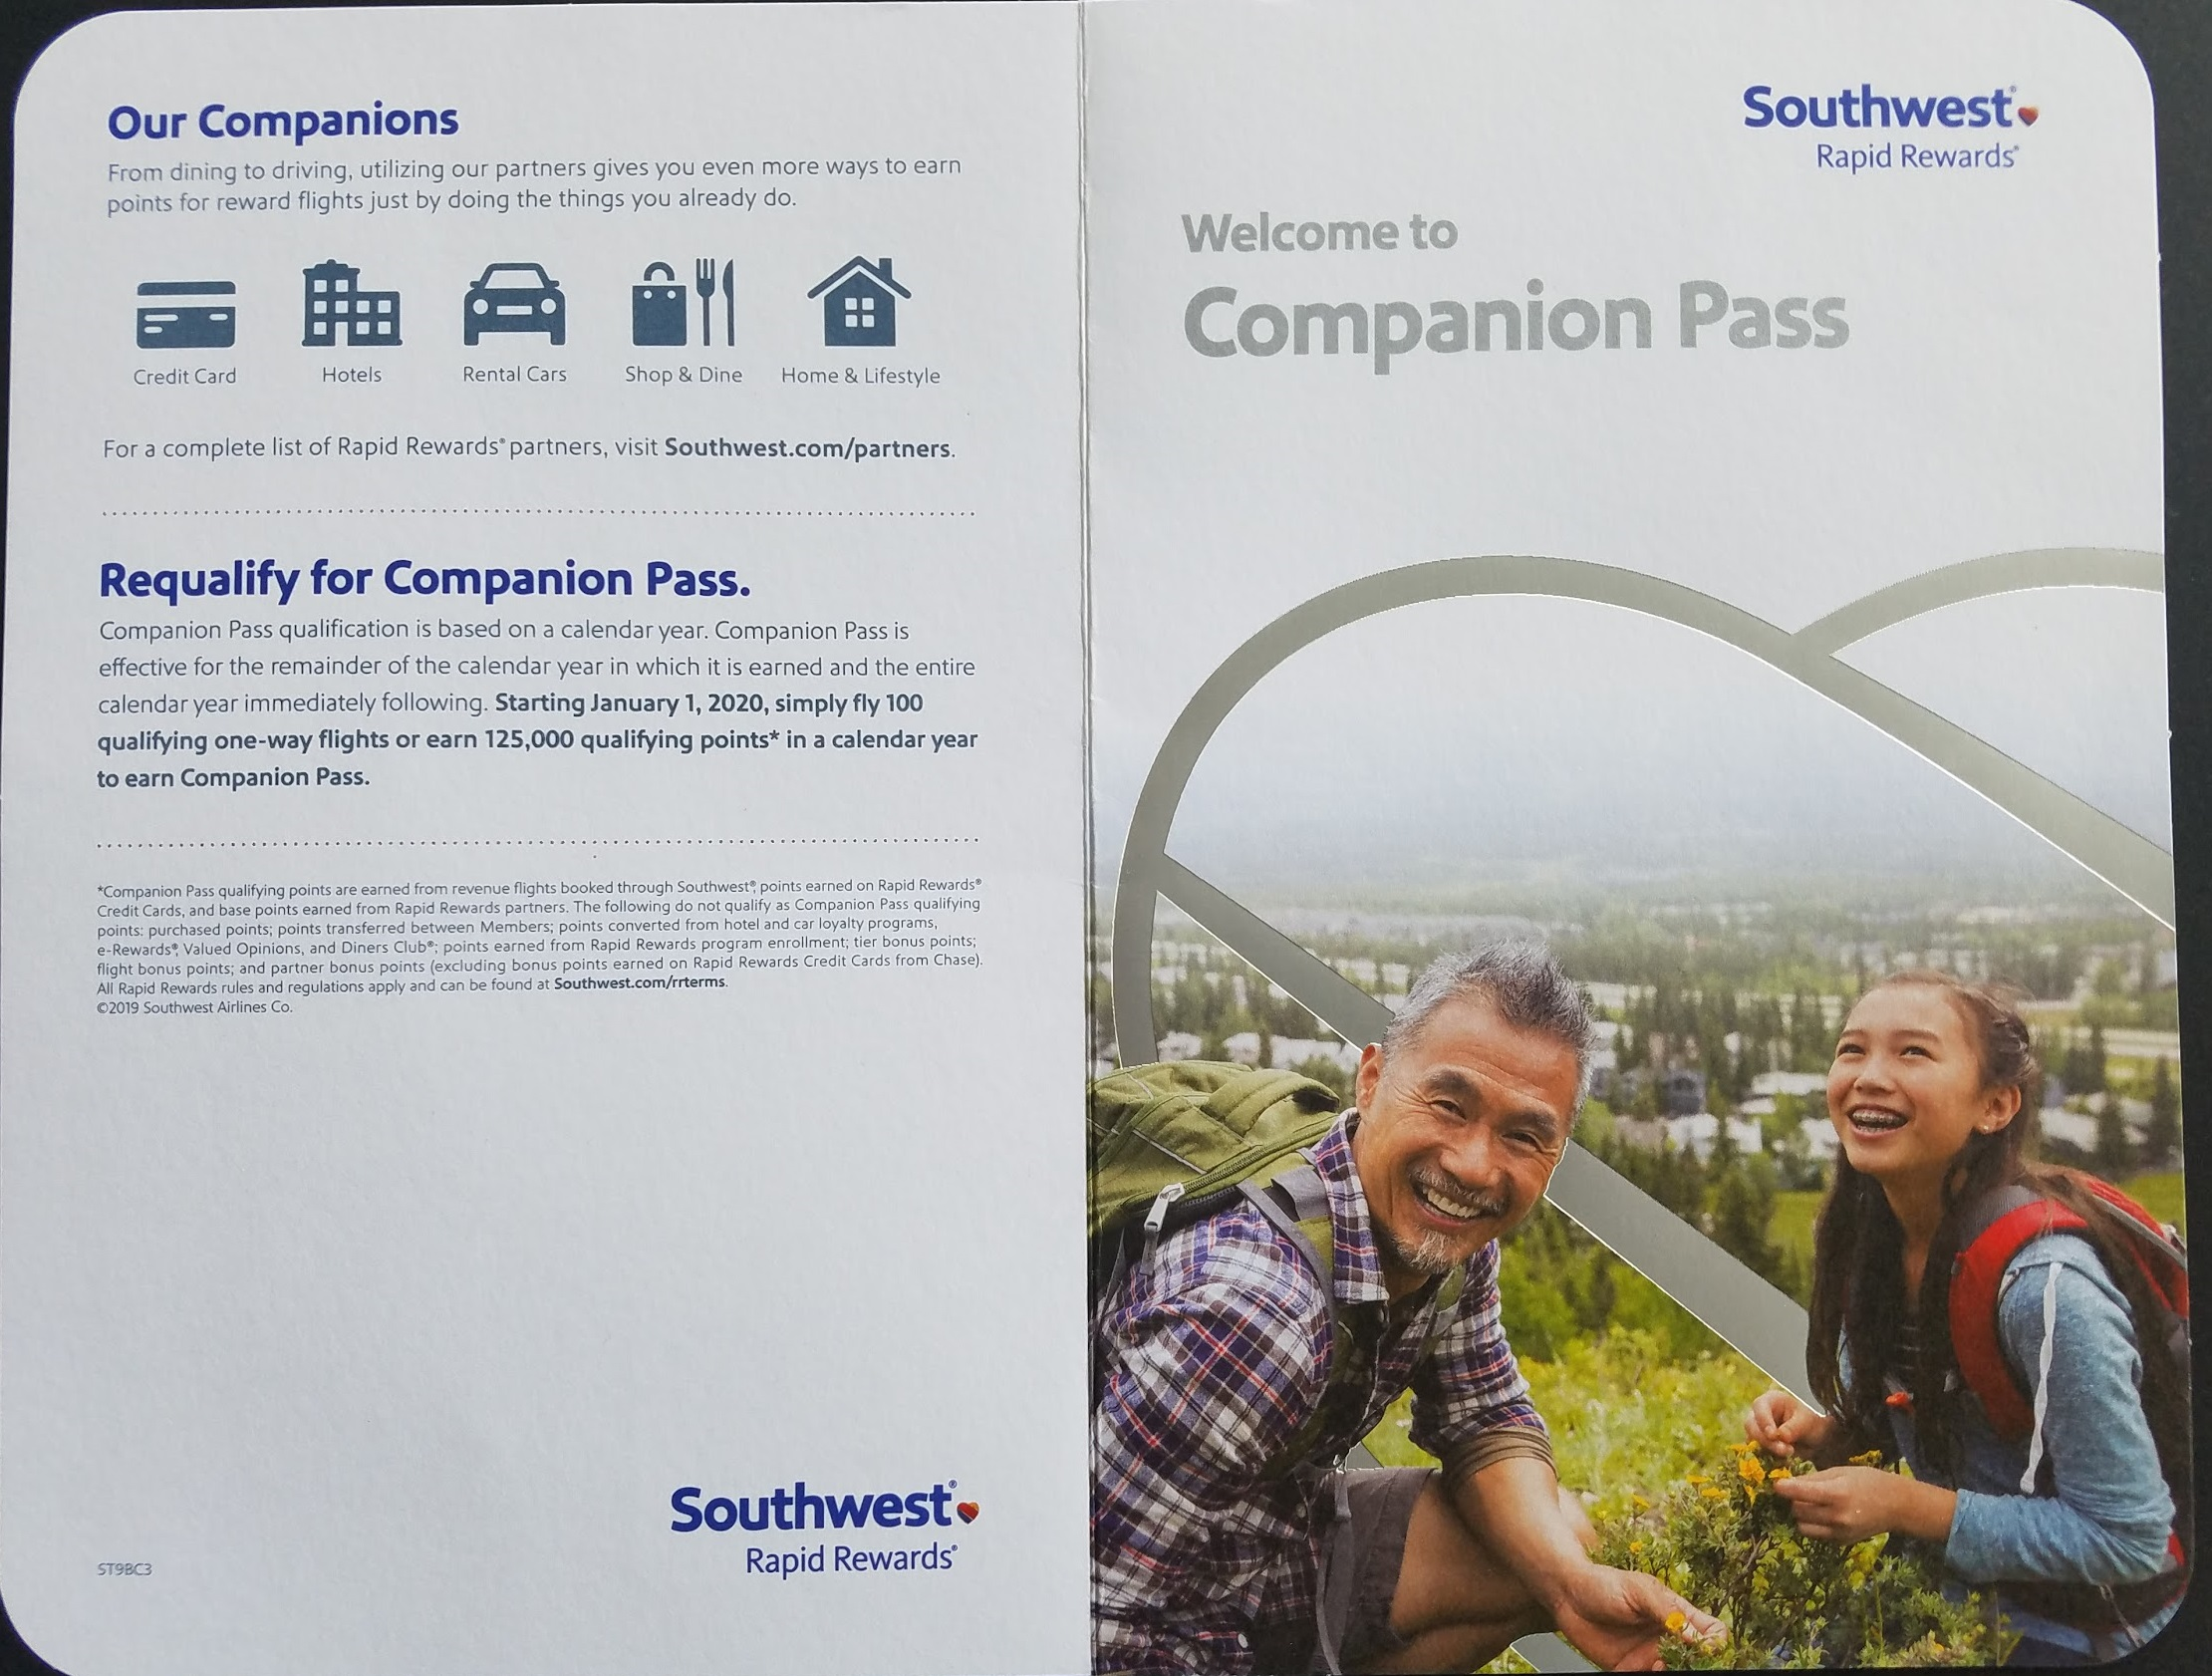 New Better Offers For Southwest Airlines Credit Cards, Accelerate Your Way To Companion Pass